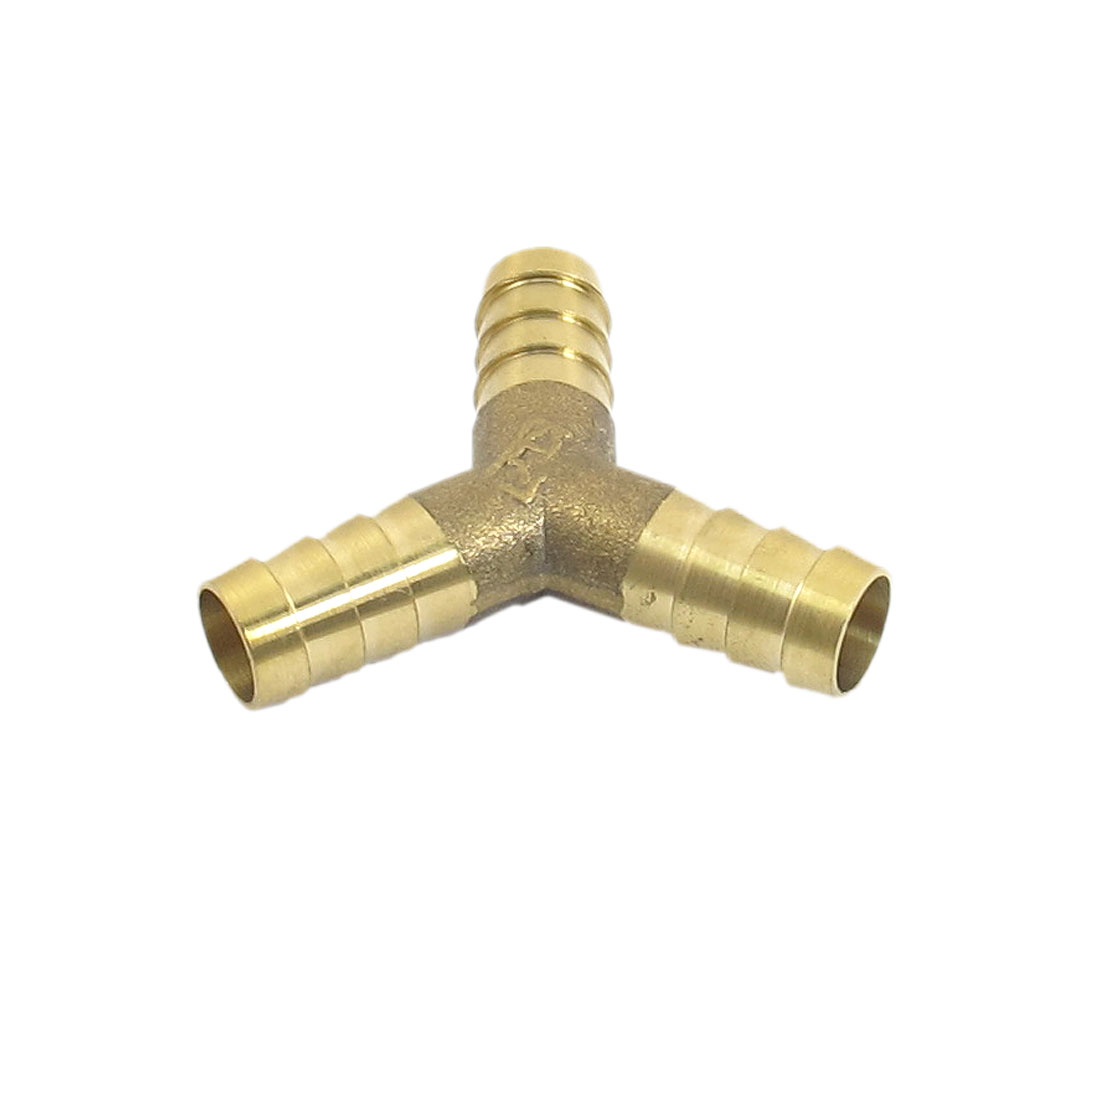 10mm Connector Dia Aquarium Fish Tank Brass Y Shaped 3 Ways Airline Air Valve